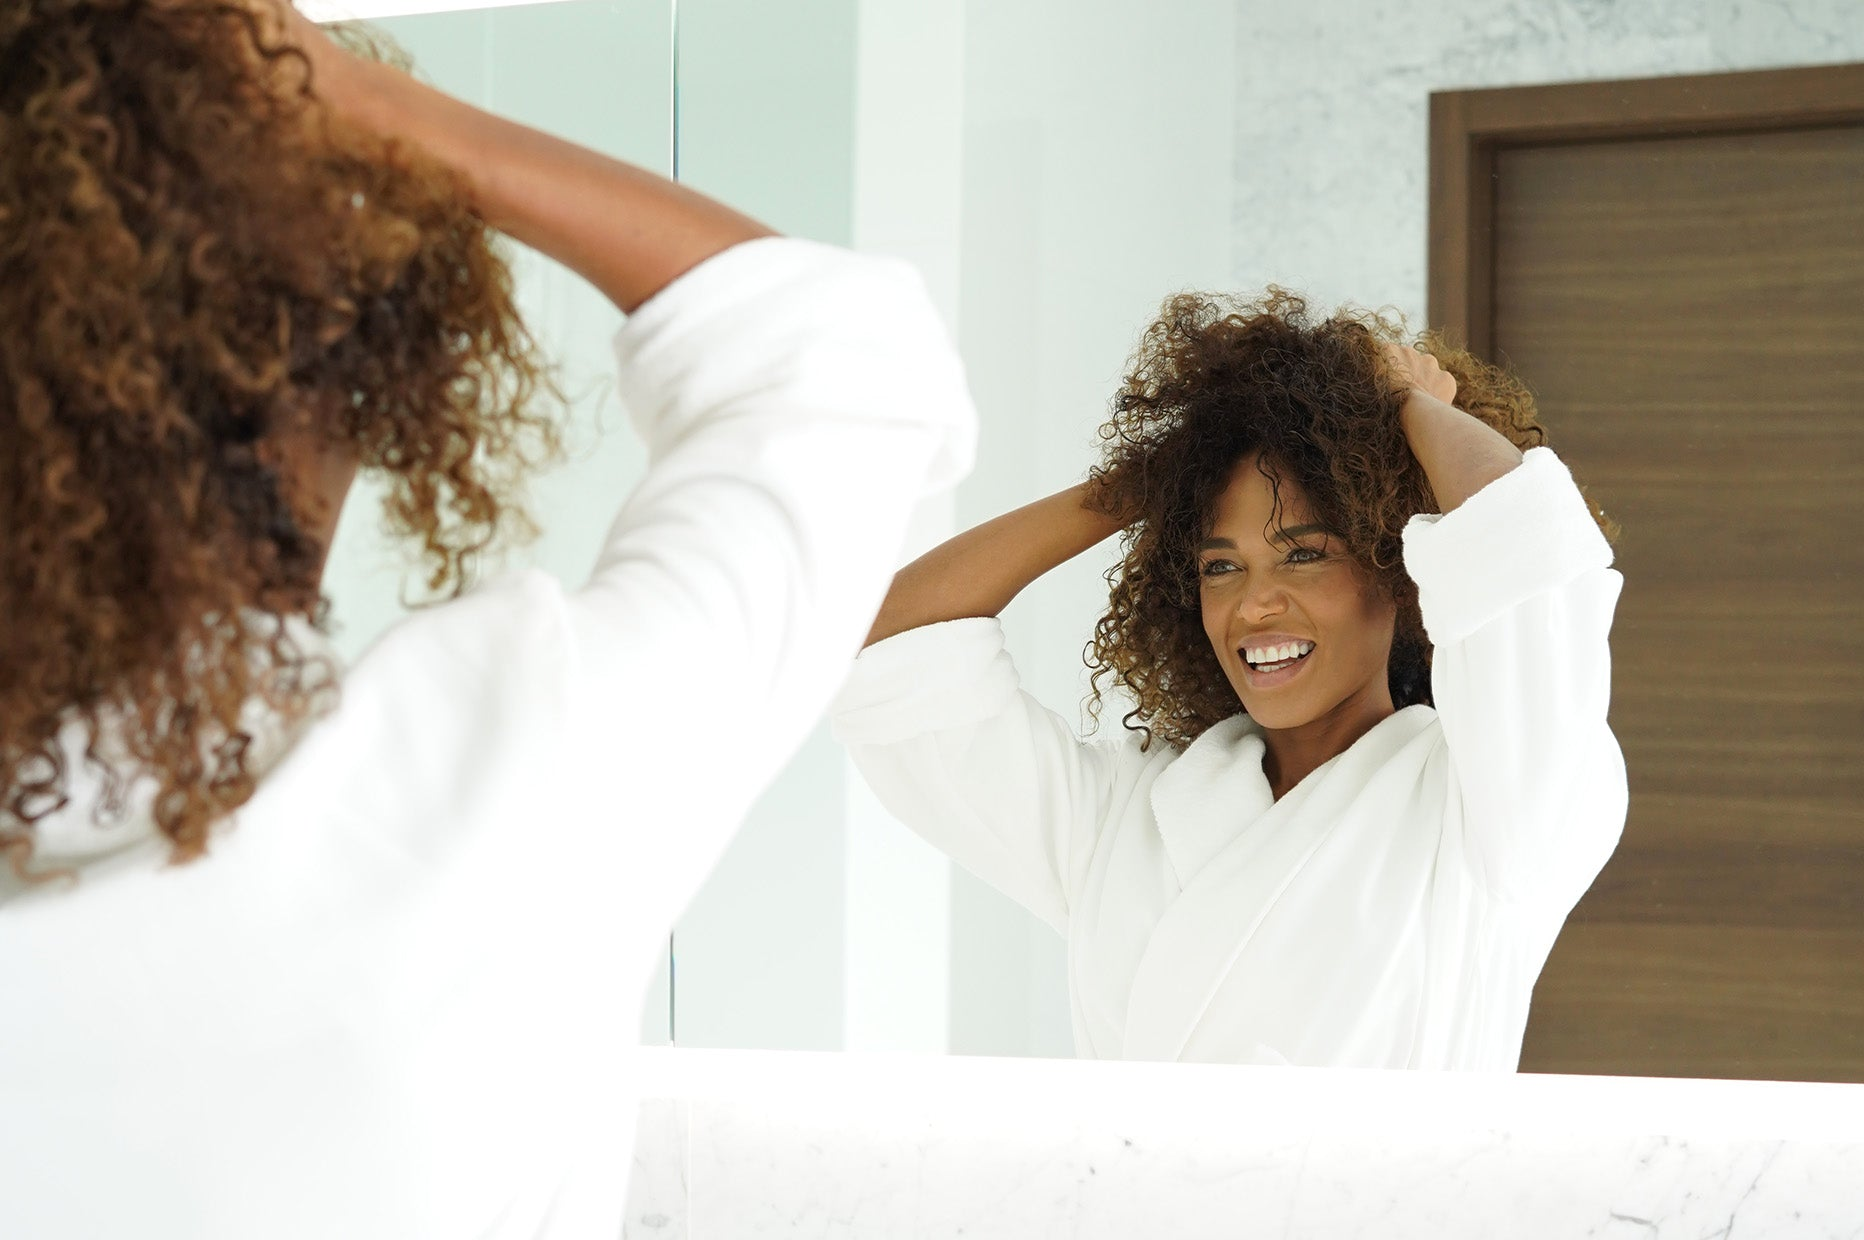 Styling Curly Hair: The Best Advice, Tips, Products and More